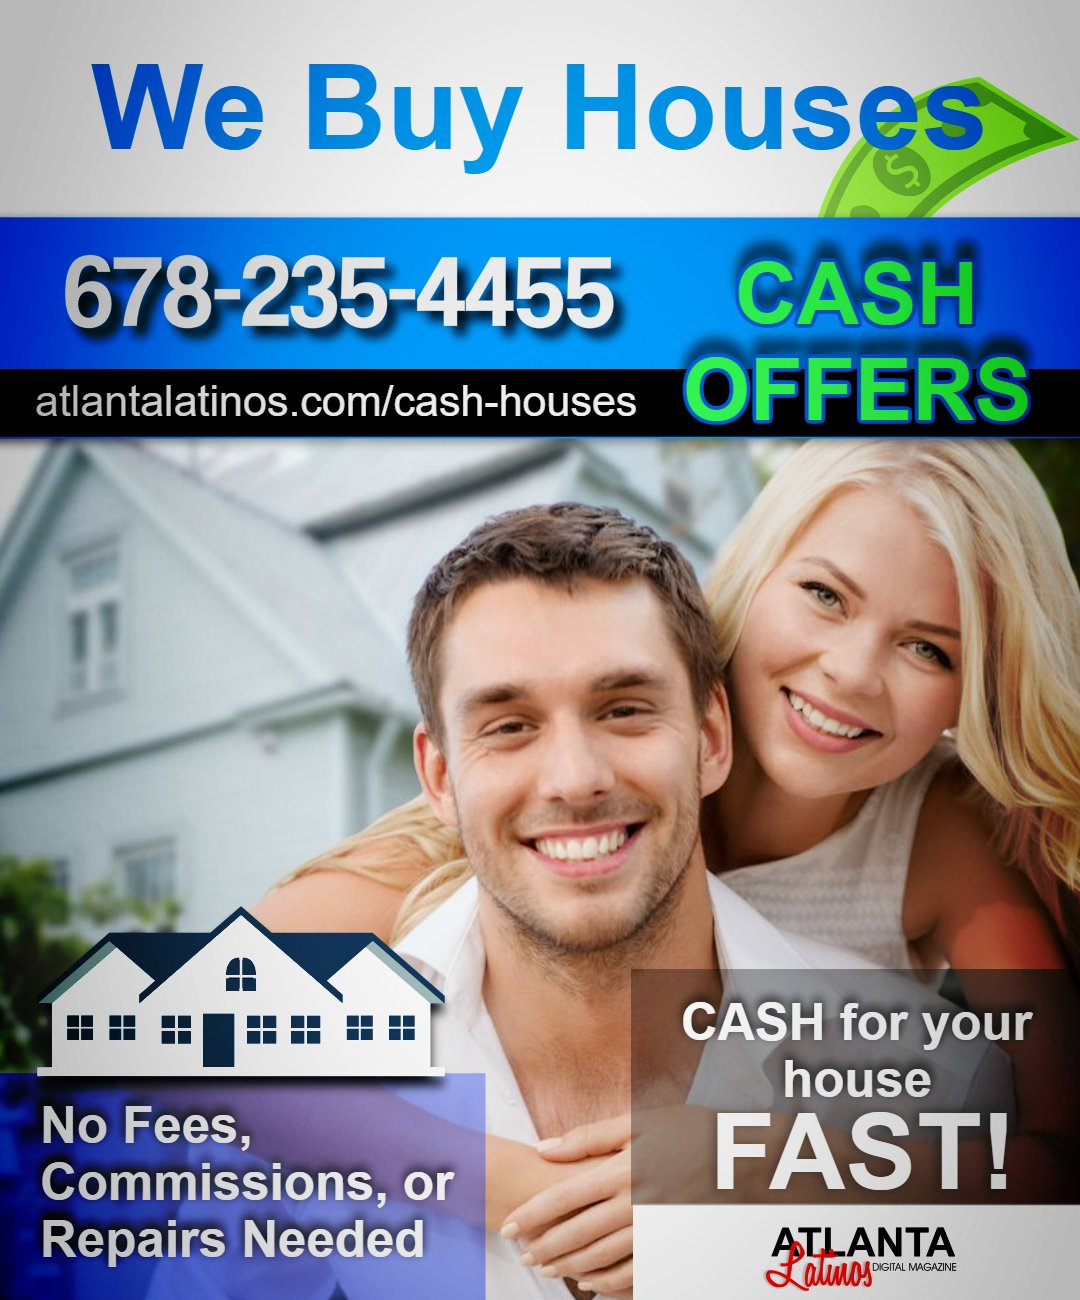 We Buy Houses Fast Cash Offers 678 235 4455